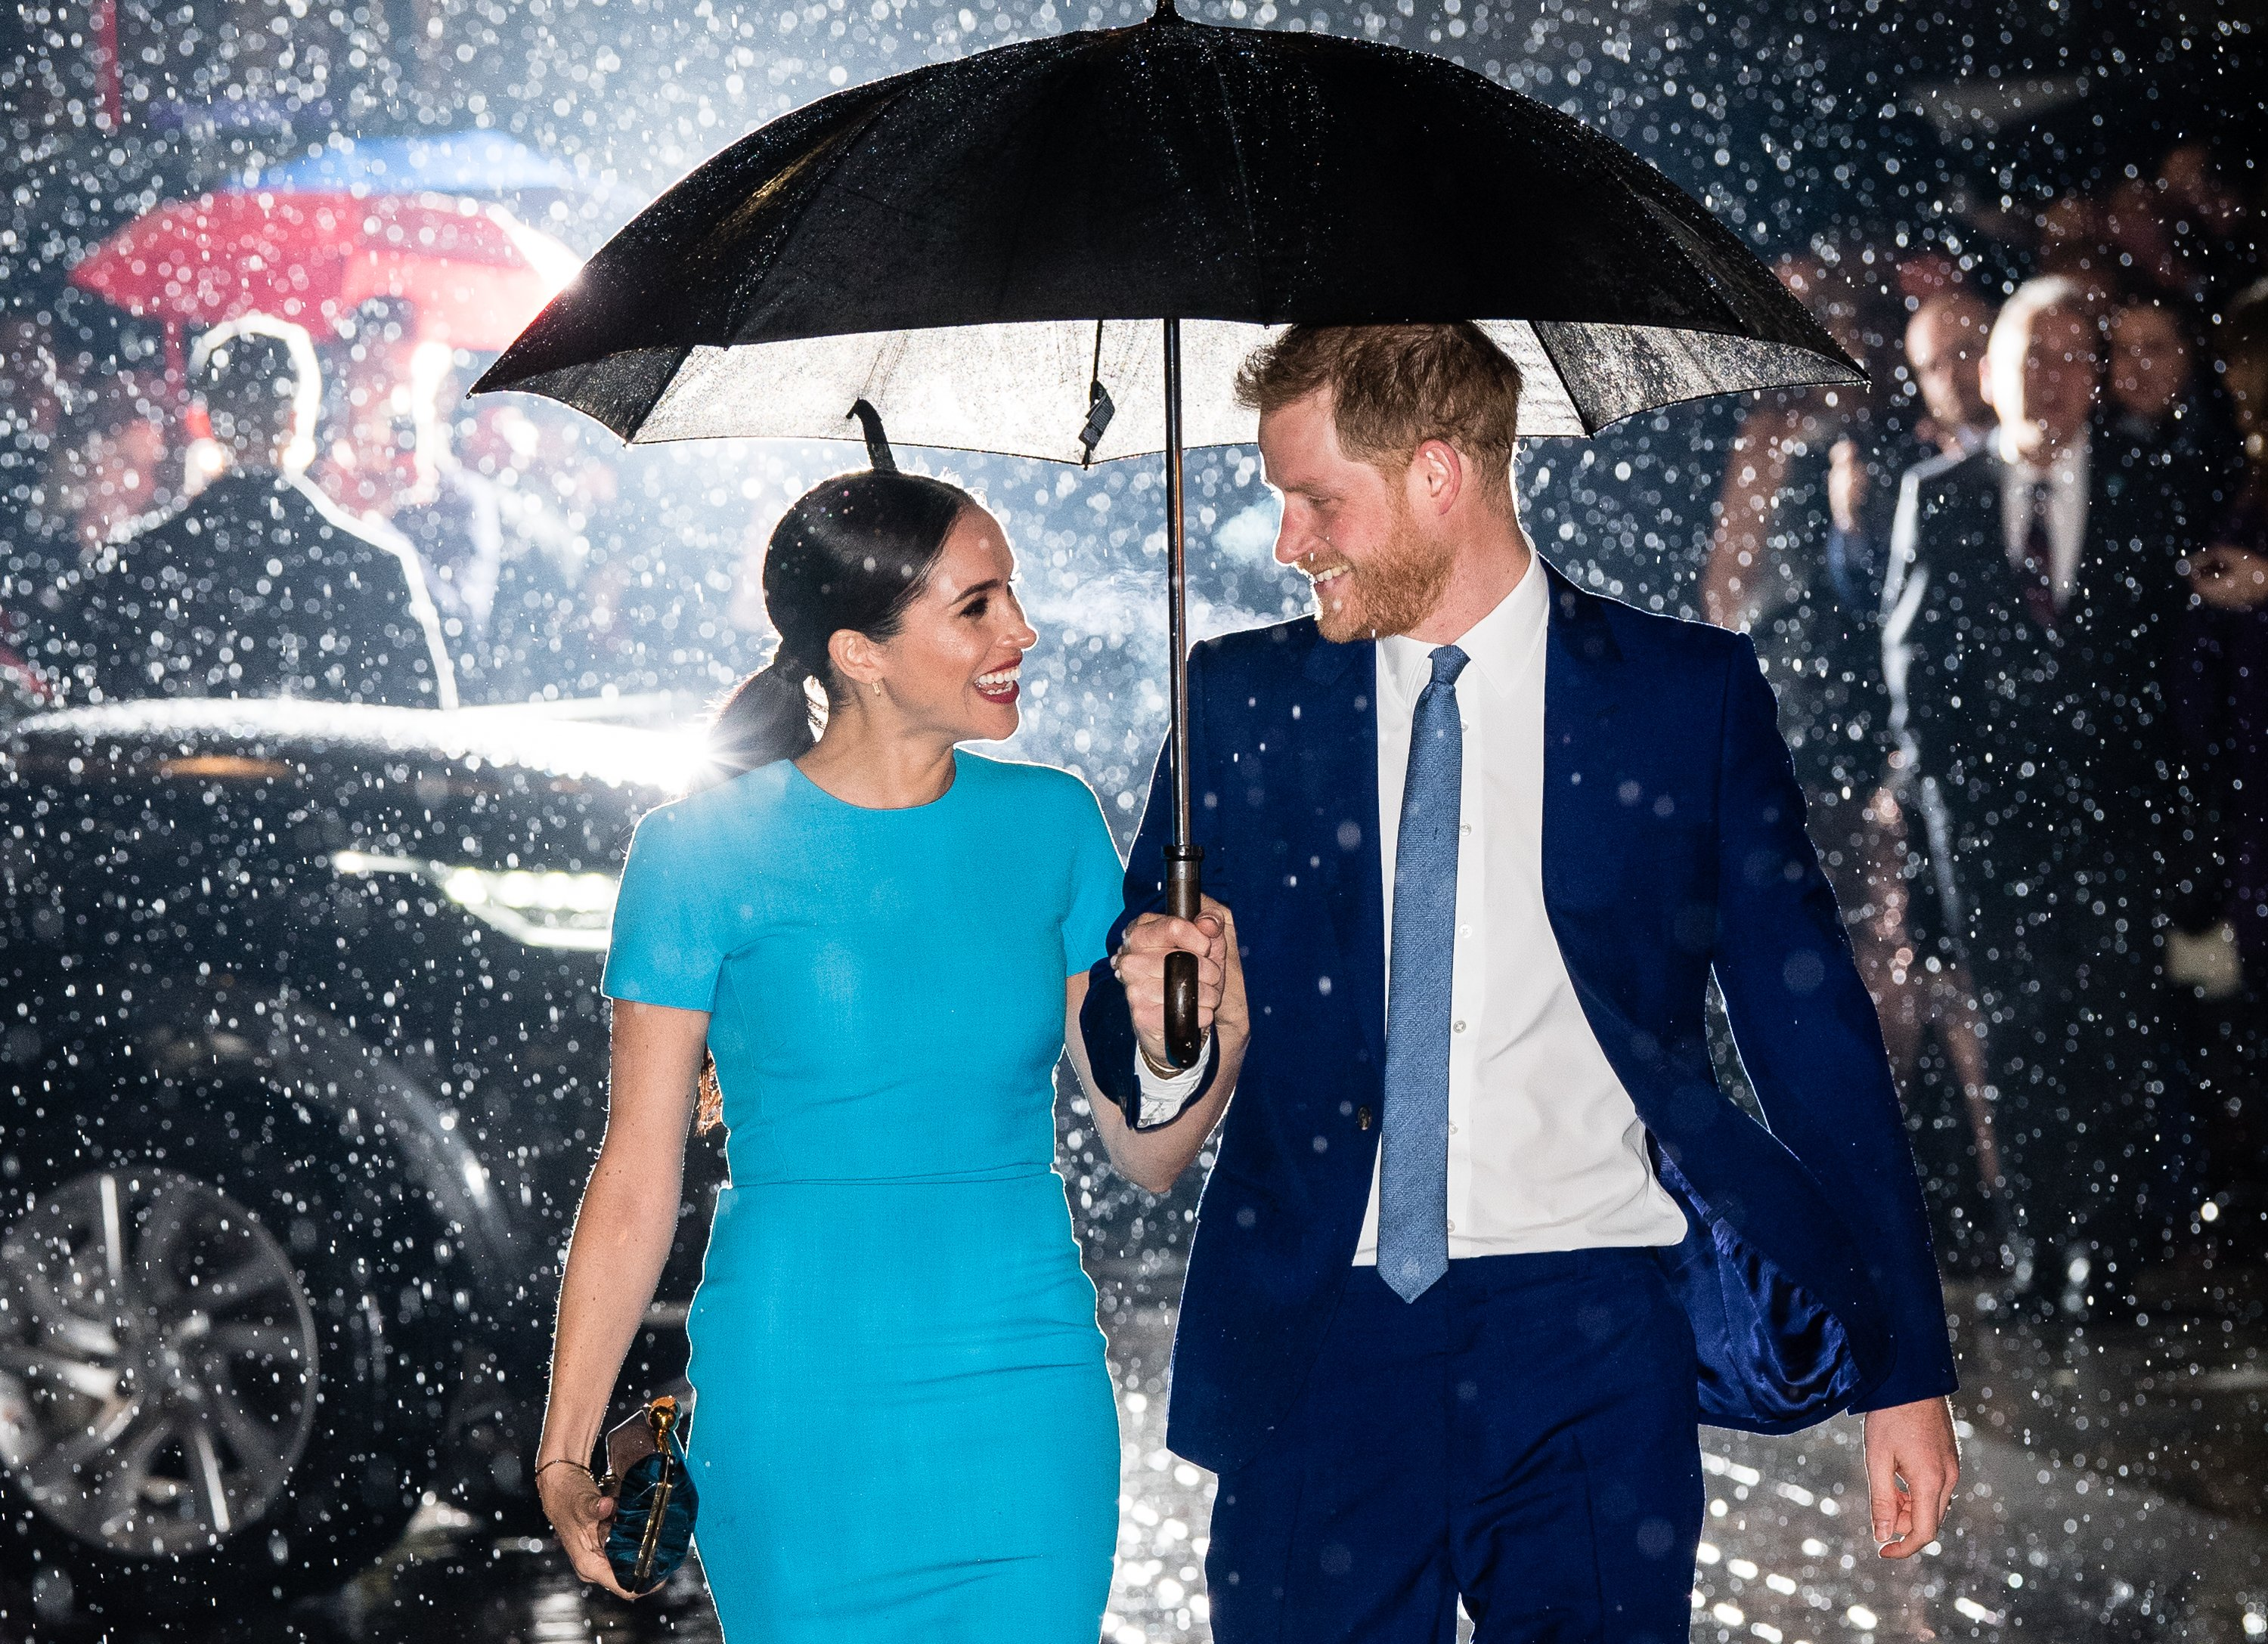 Prince Harry and Meghan Markle attend The Endeavour Fund Awards on March 05, 2020, in London, England. | Source: Getty Images.